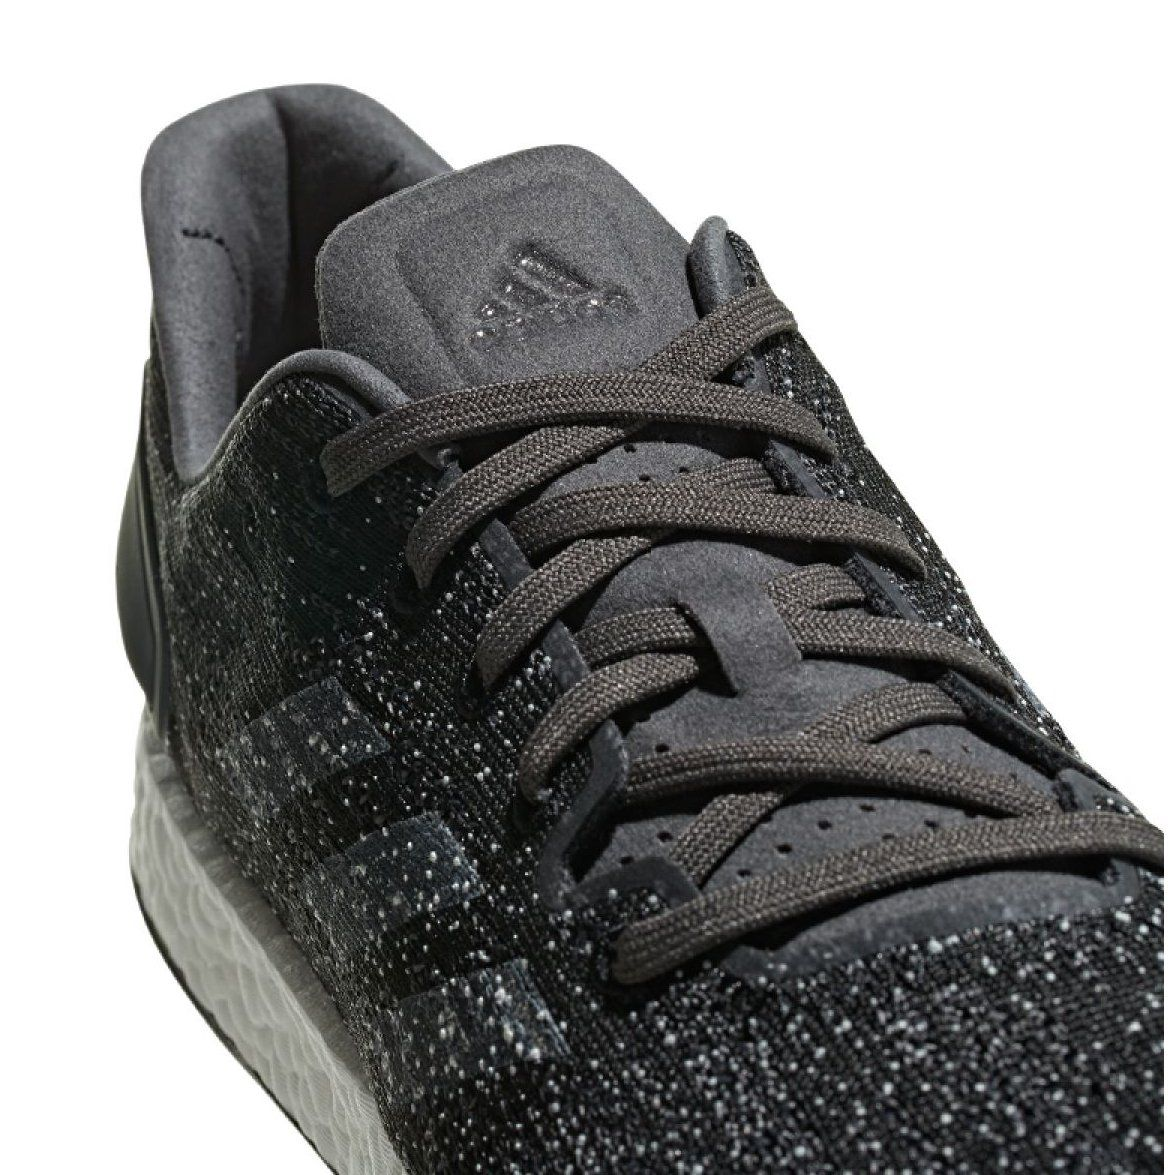 auge excepción Catástrofe  Adidas PureBoost Dpr M B37787 shoes black | Adidas pure boost, Minimalist  shoes, Black shoes